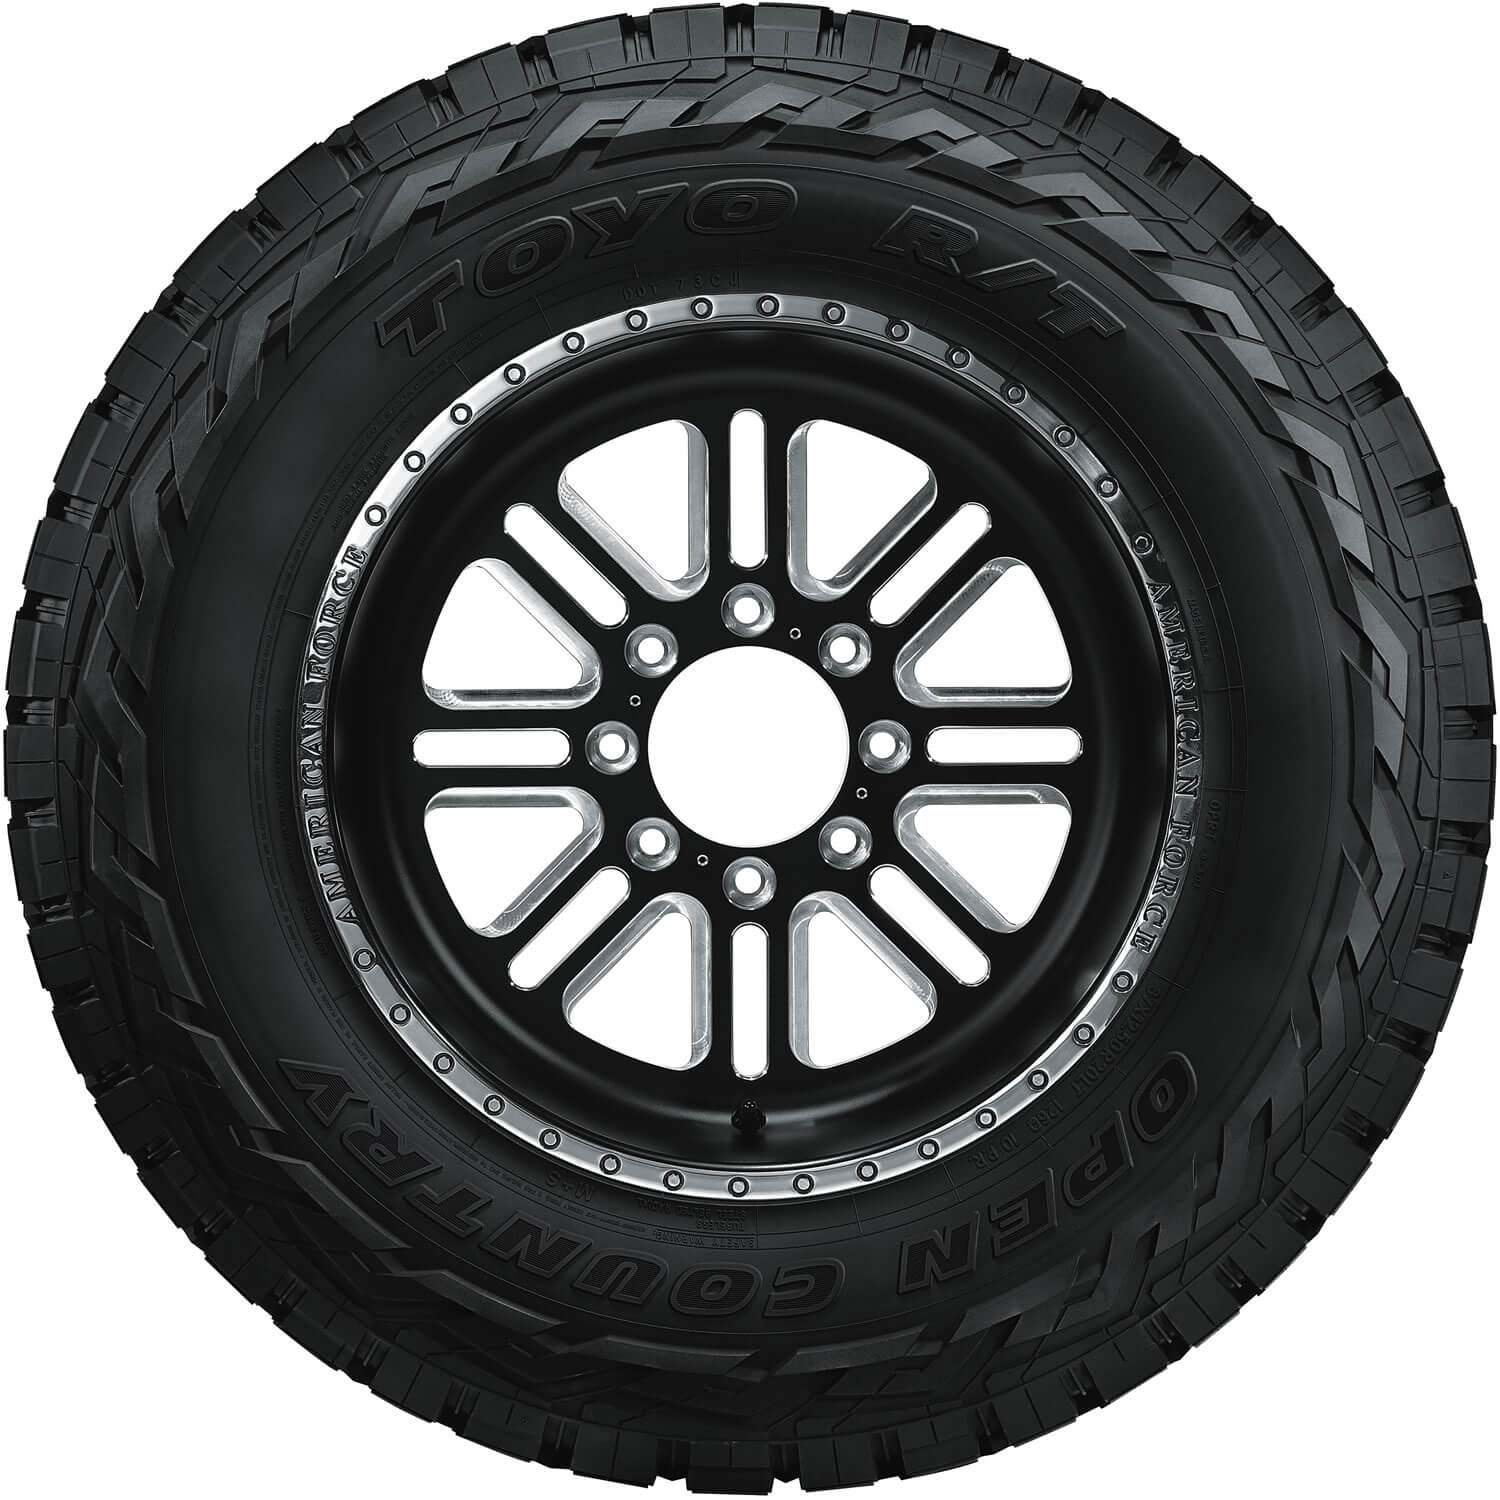 Toyo Open Country RT sidewall